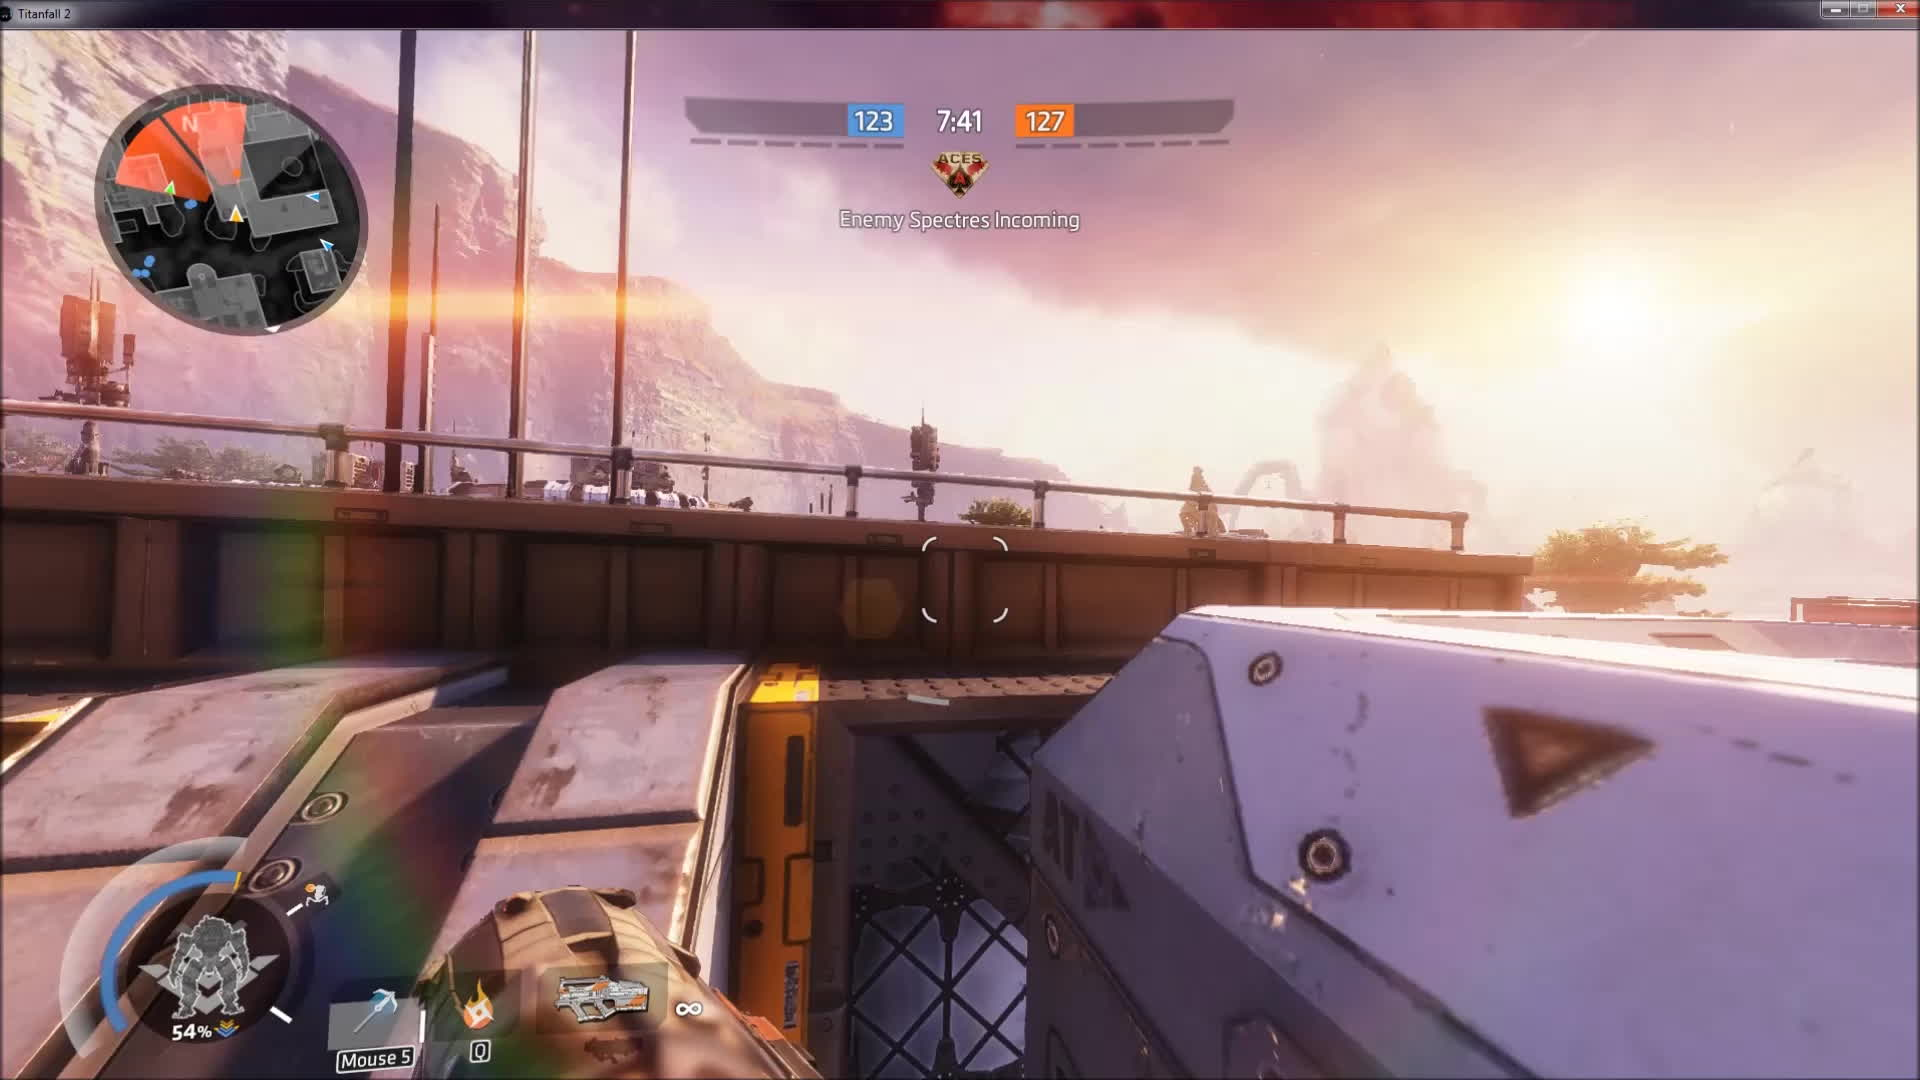 titanfall2, Grapple Meetup GIFs